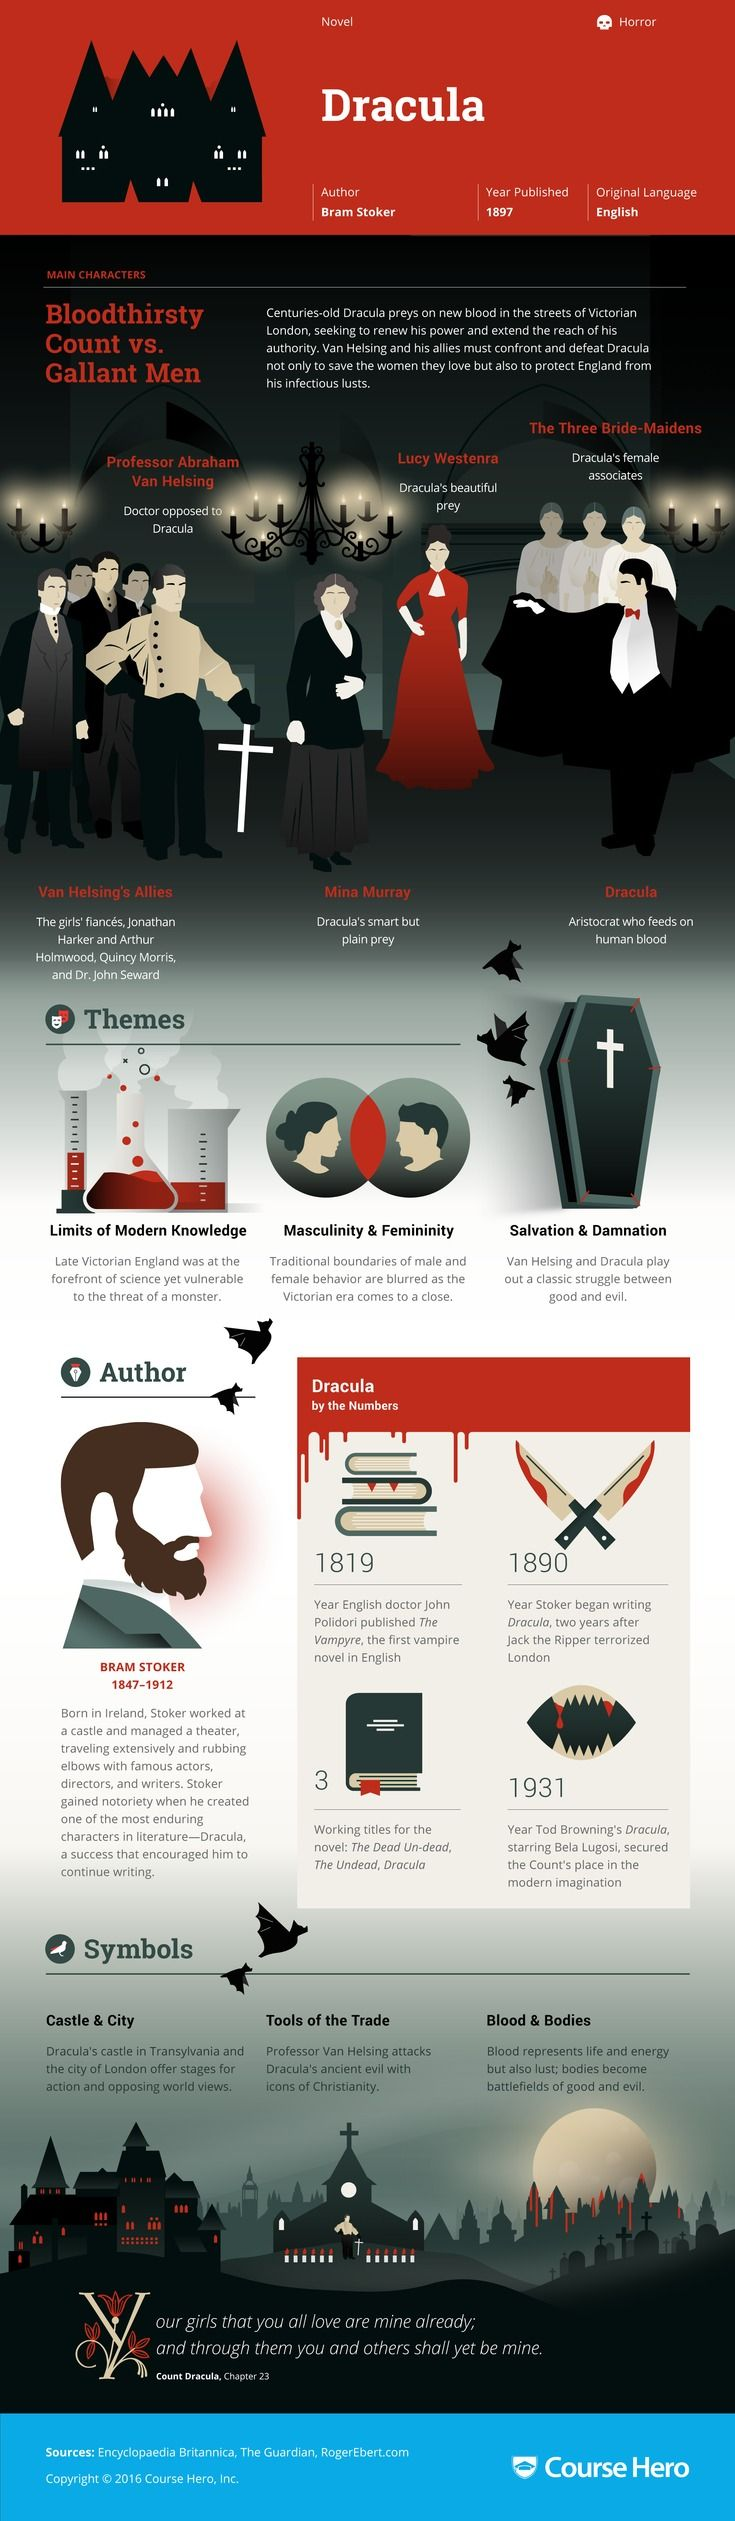 images about literature trivia oliver twist study guide for bram stoker s dracula including chapter summary character analysis and more learn all about dracula ask questions and get the answers